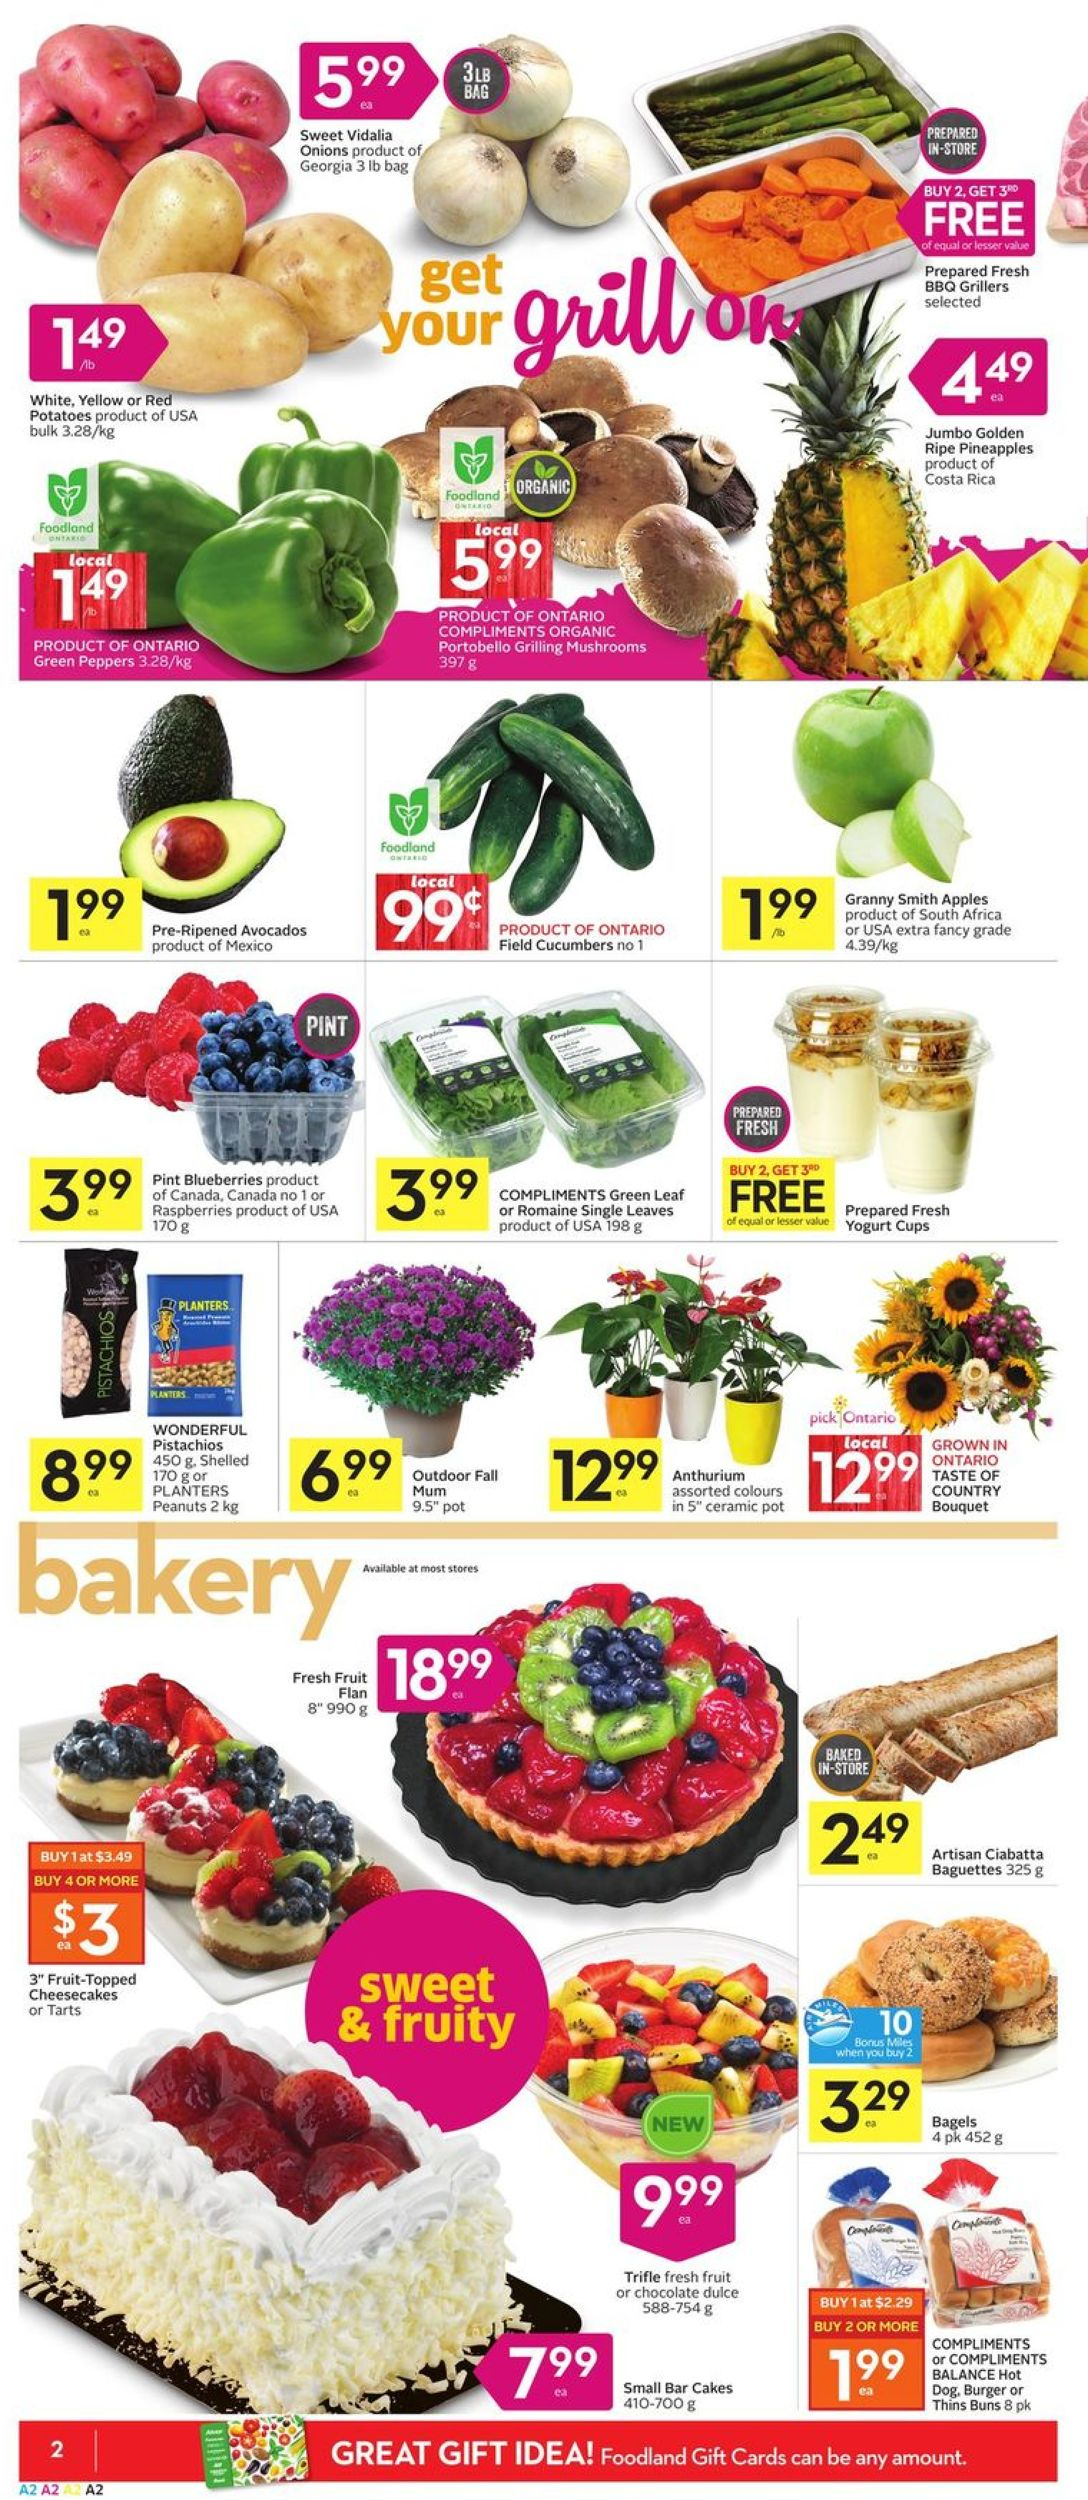 Foodland Flyer - 08/15-08/21/2019 (Page 2)